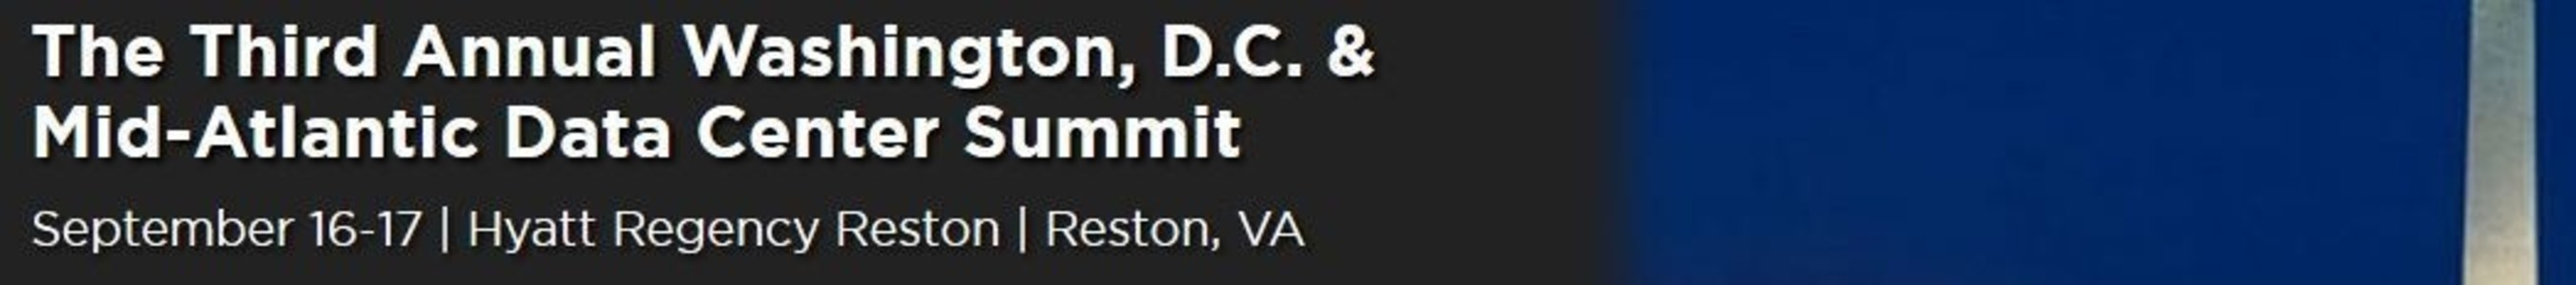 Continue the Data Center Conversation in Washington, D.C. Sept. 16-17 with The National Data Center Summit Series